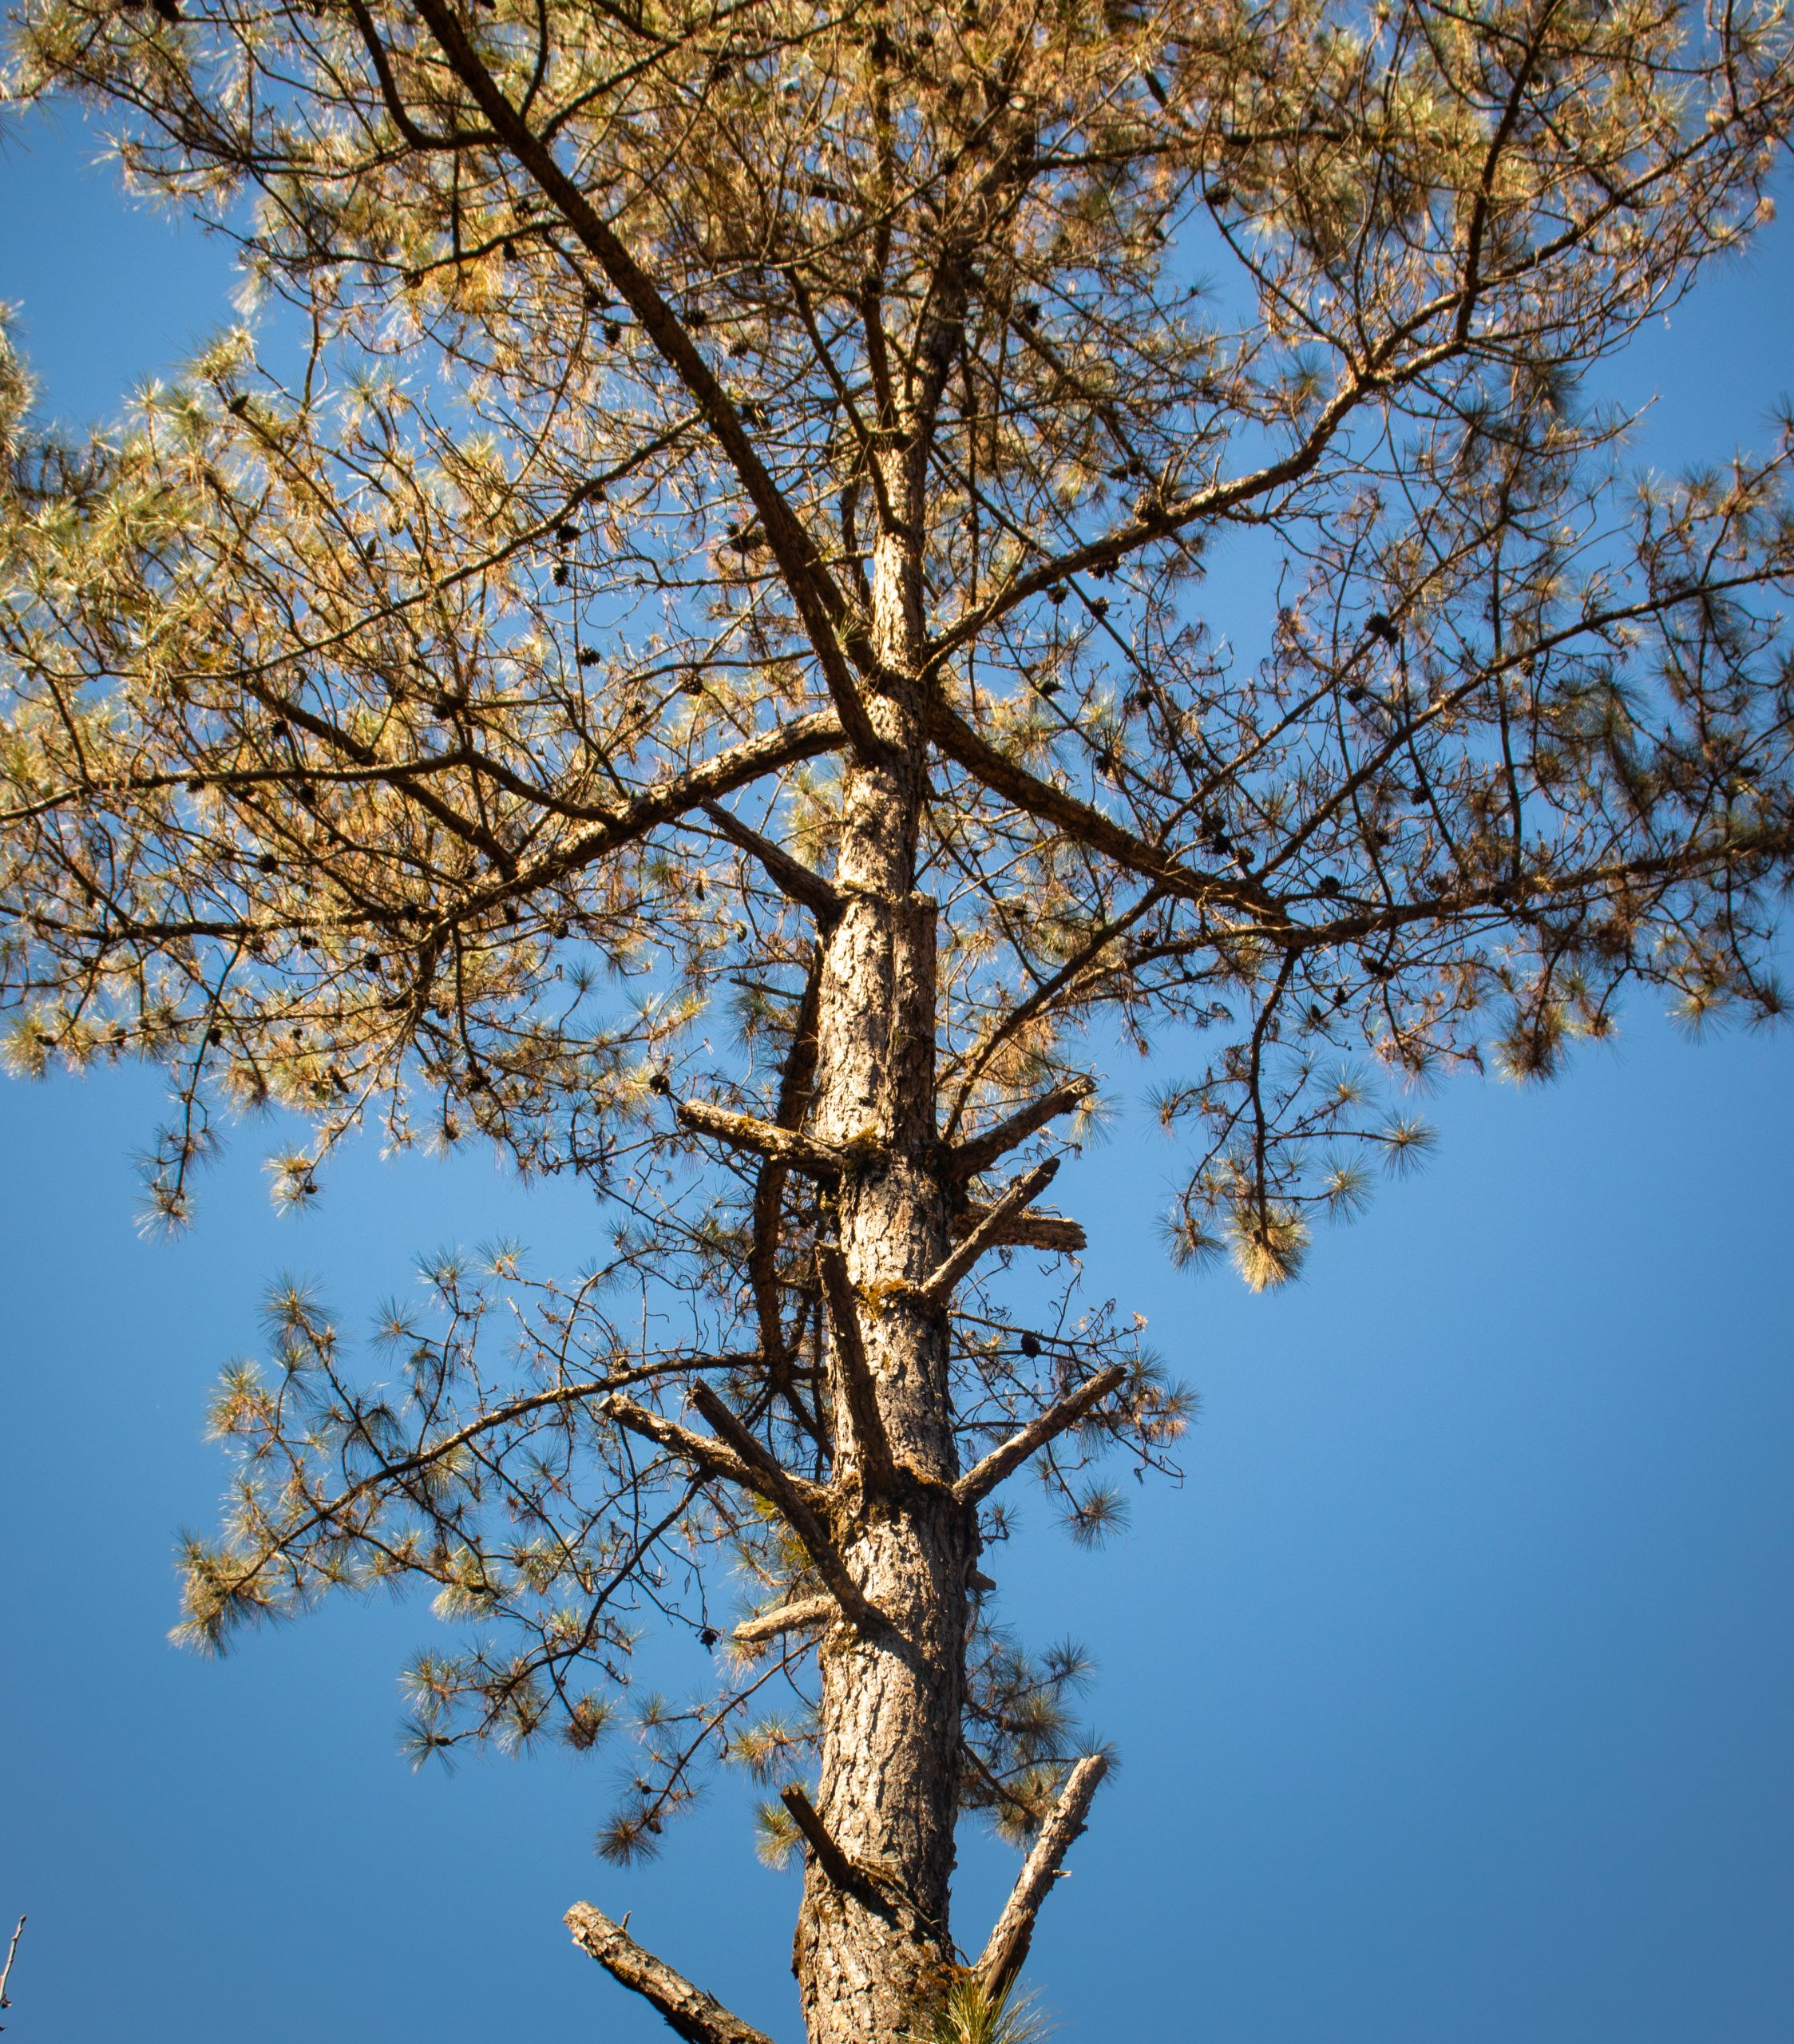 dried pine tree in sunlight